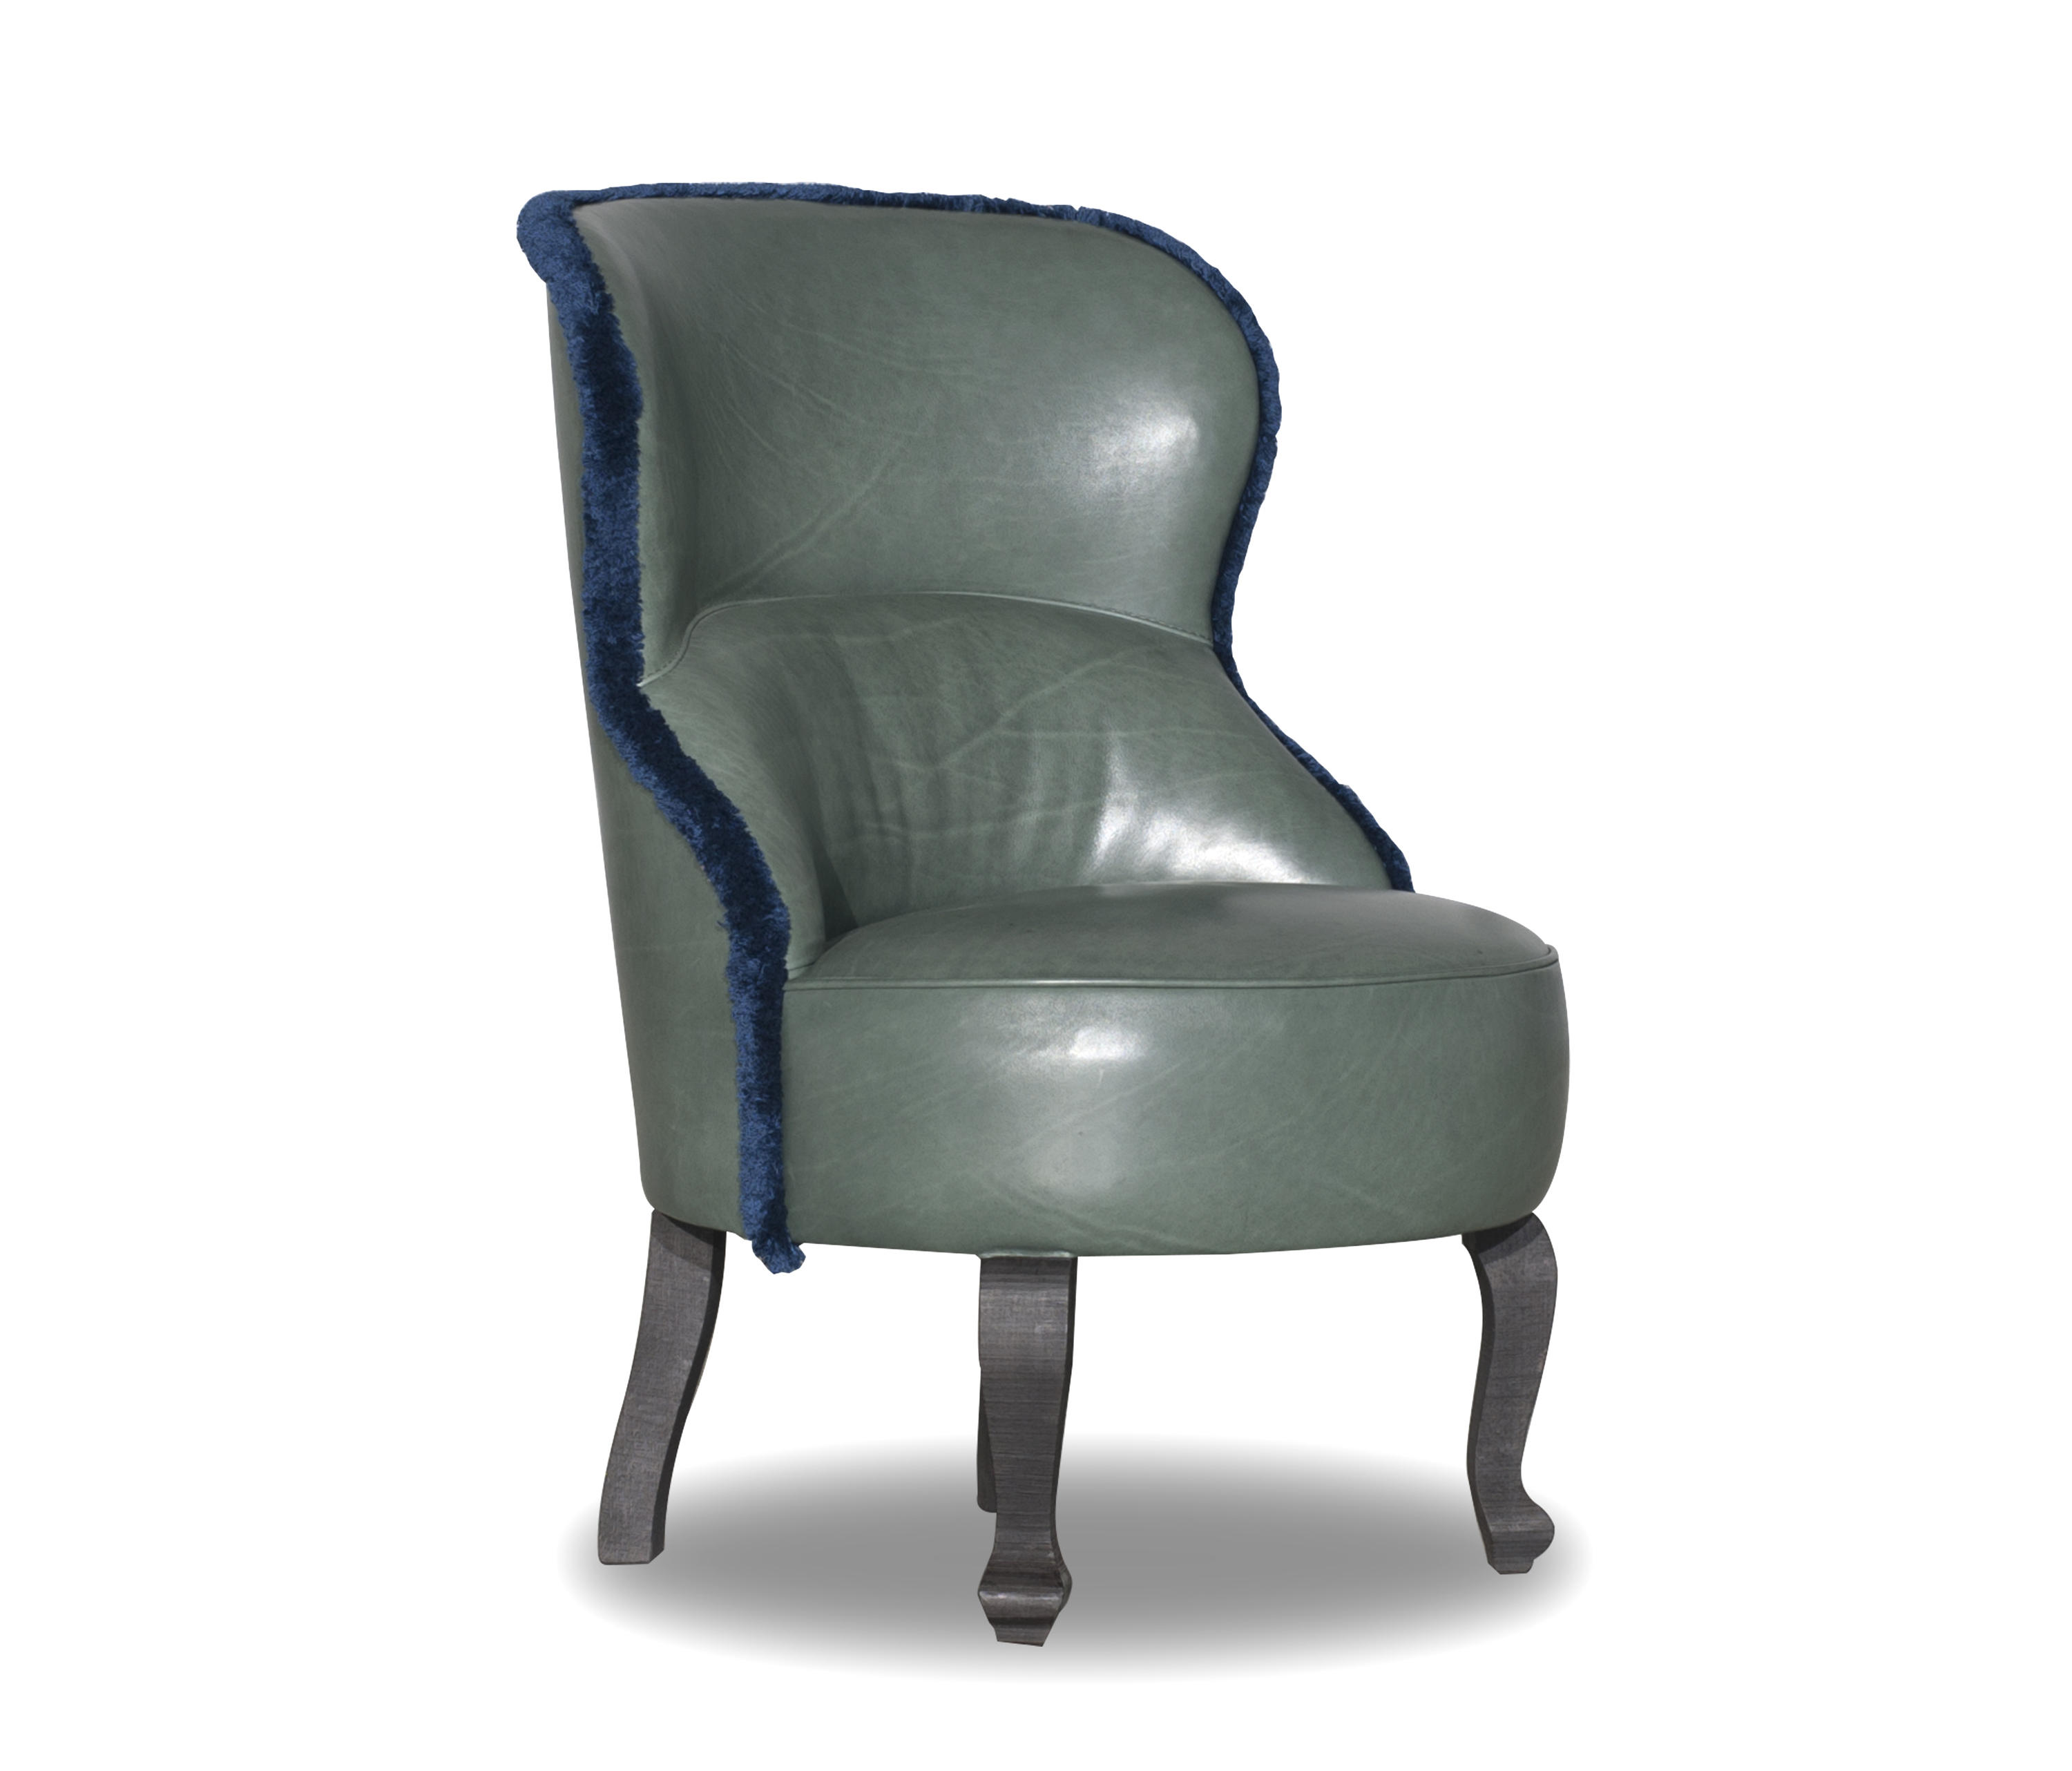 Sessel Von Baxter Sellerina Armchair Sessel Von Baxter Architonic